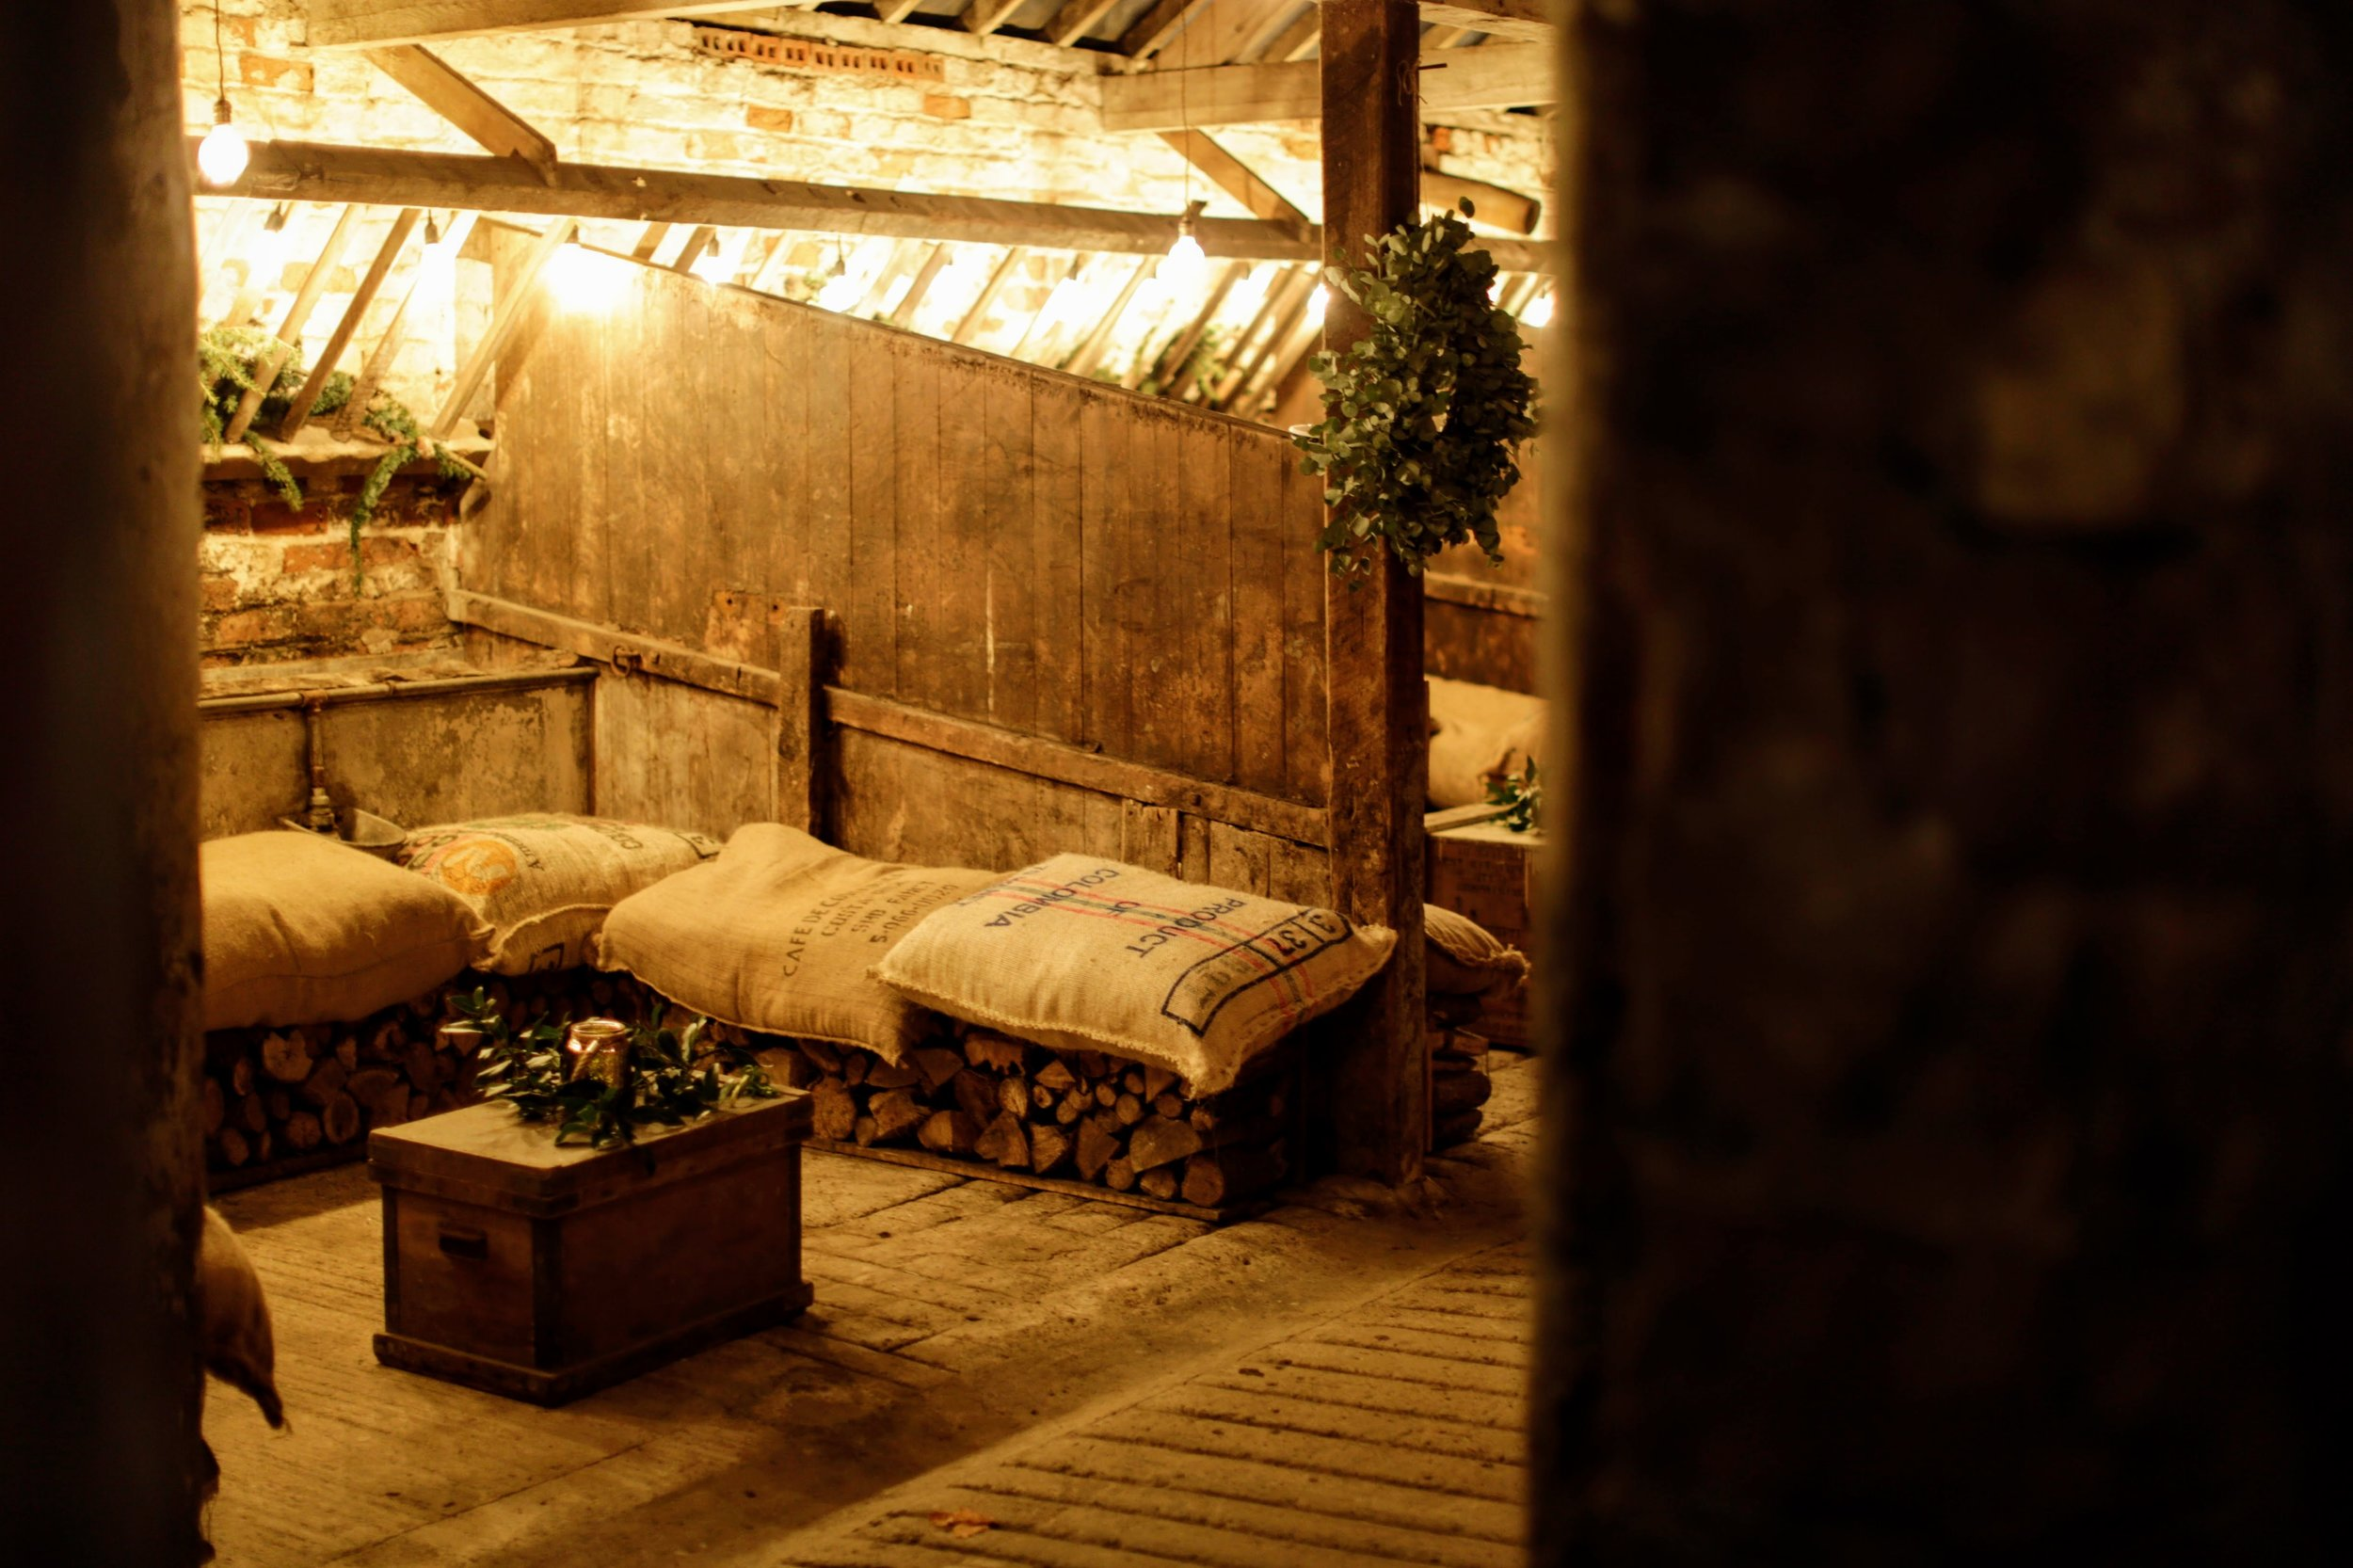 Cosy up in the Cow Stalls at The Normans wedding venue Photo by www.dylannoltephotography.com